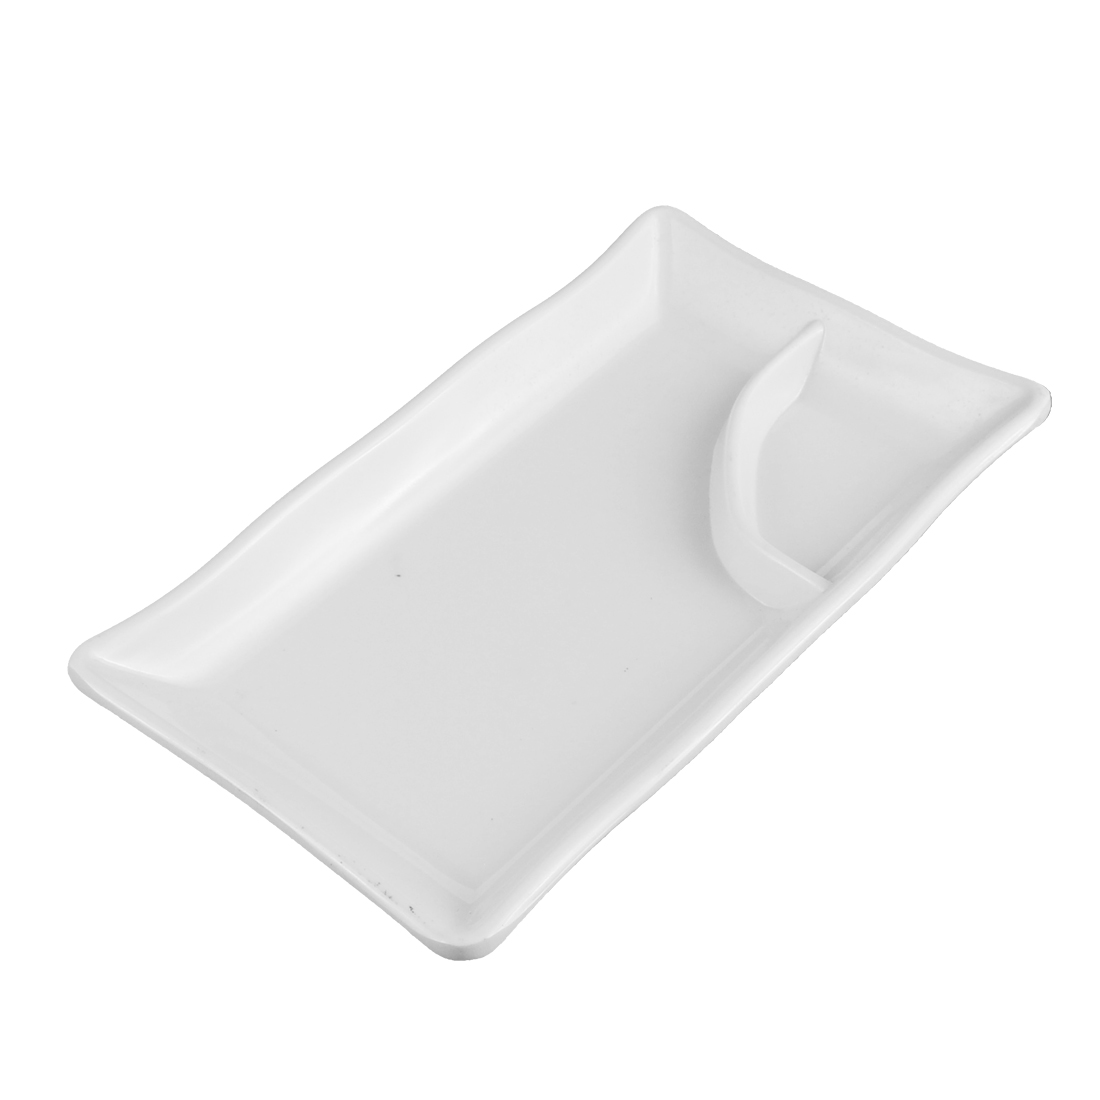 Plastic 2 Compartment Dumplings Sushi Soy Sauce Mustard Dipping Dish Plate White